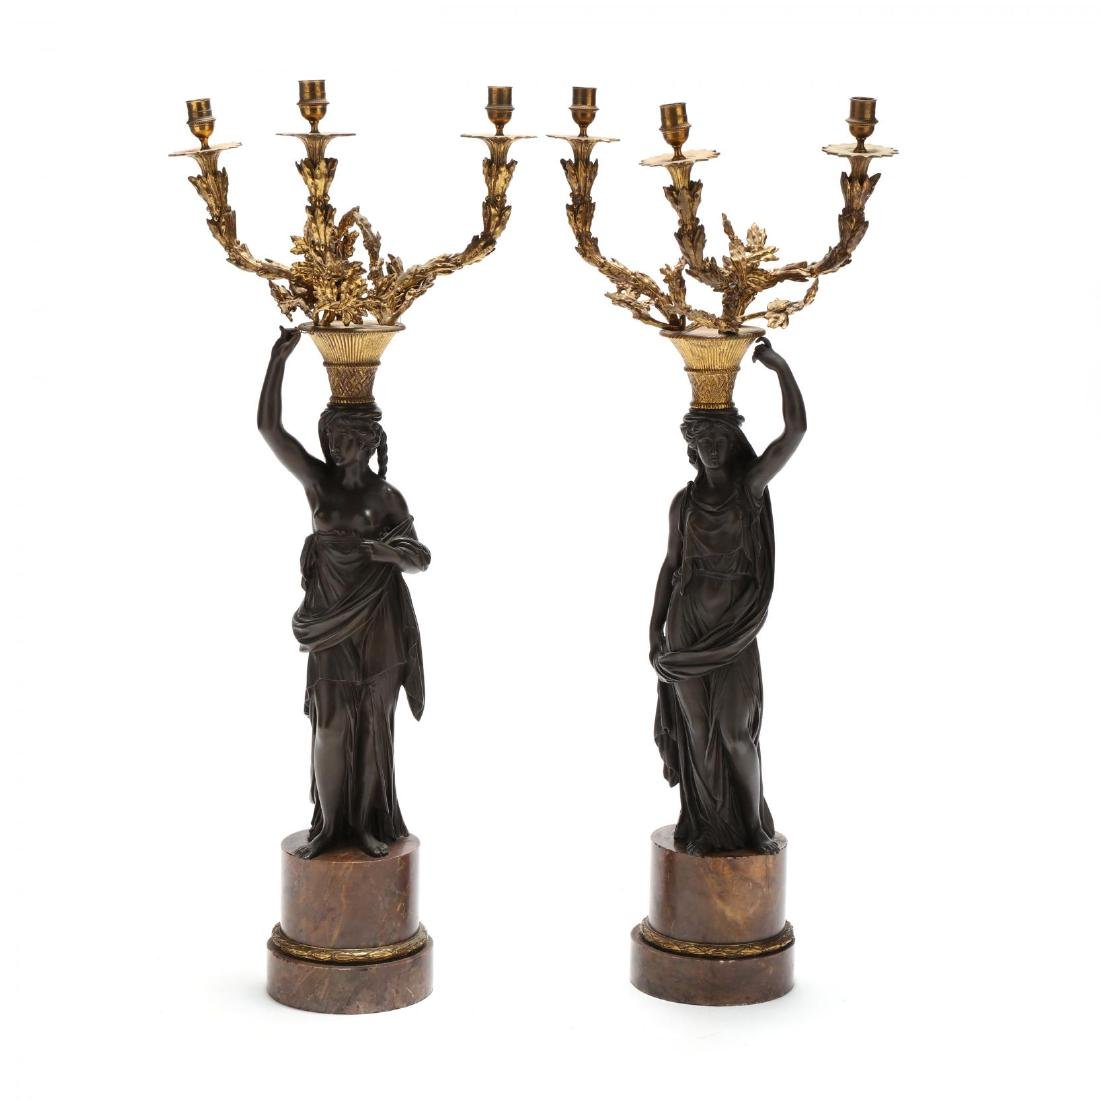 A Pair of Neoclassical Style Figural Candelabra